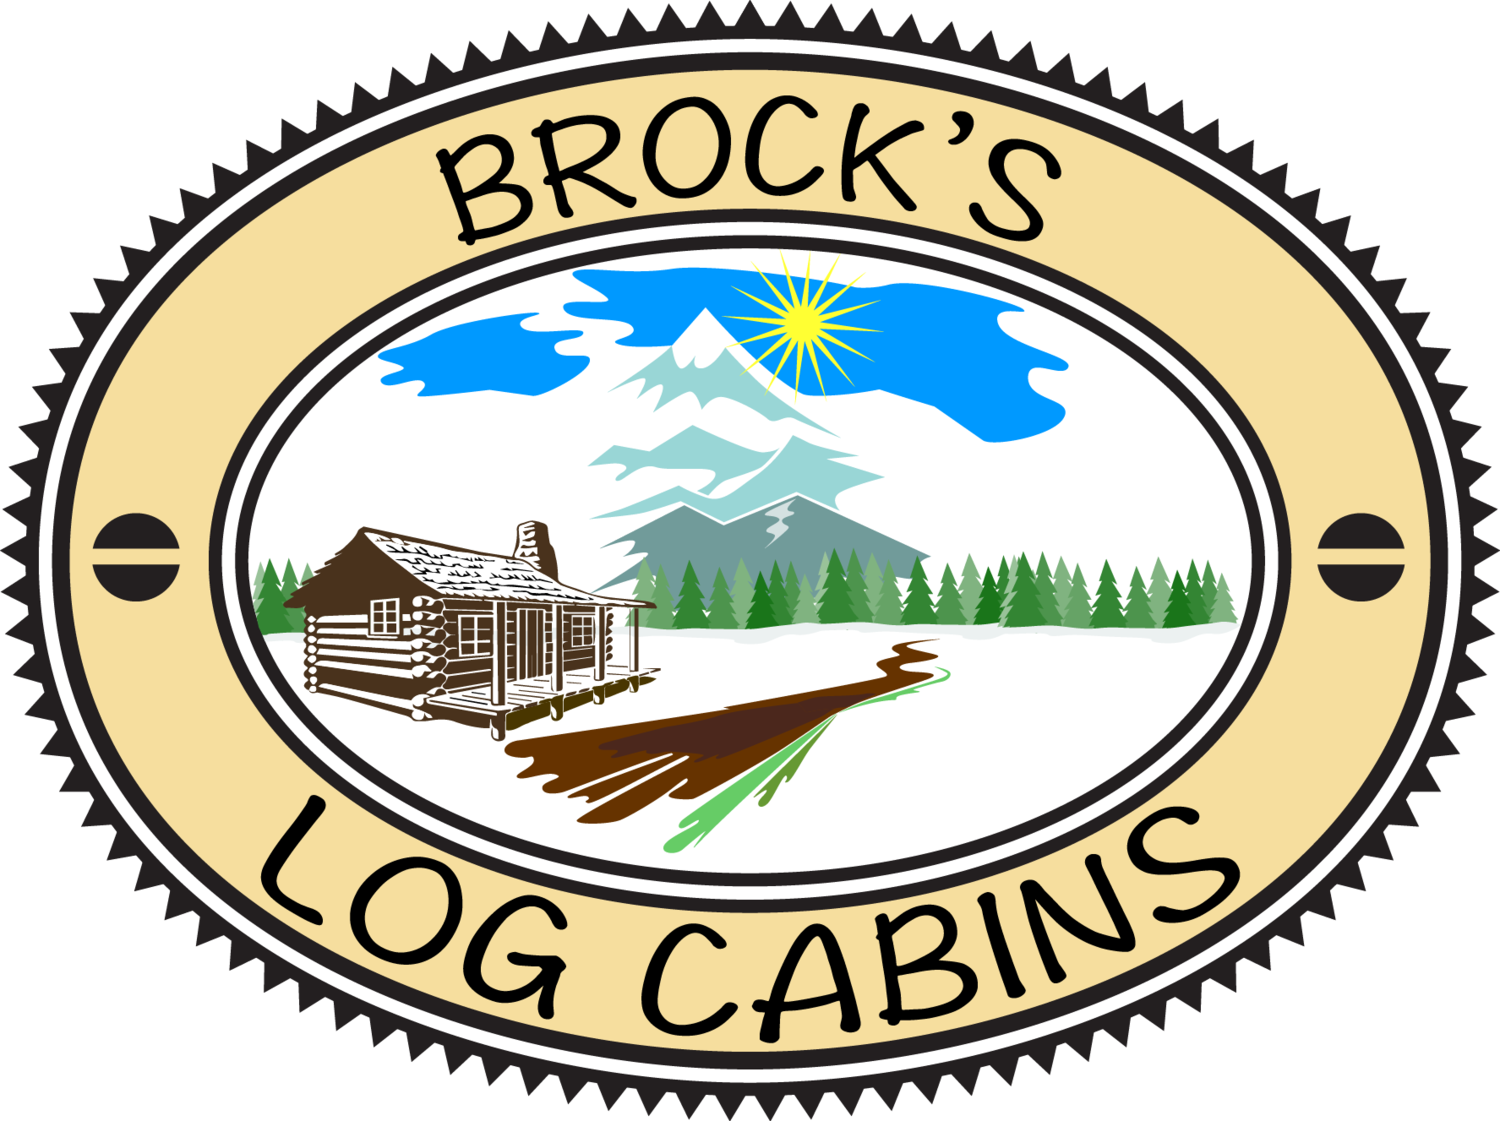 Brock's Log Cabins